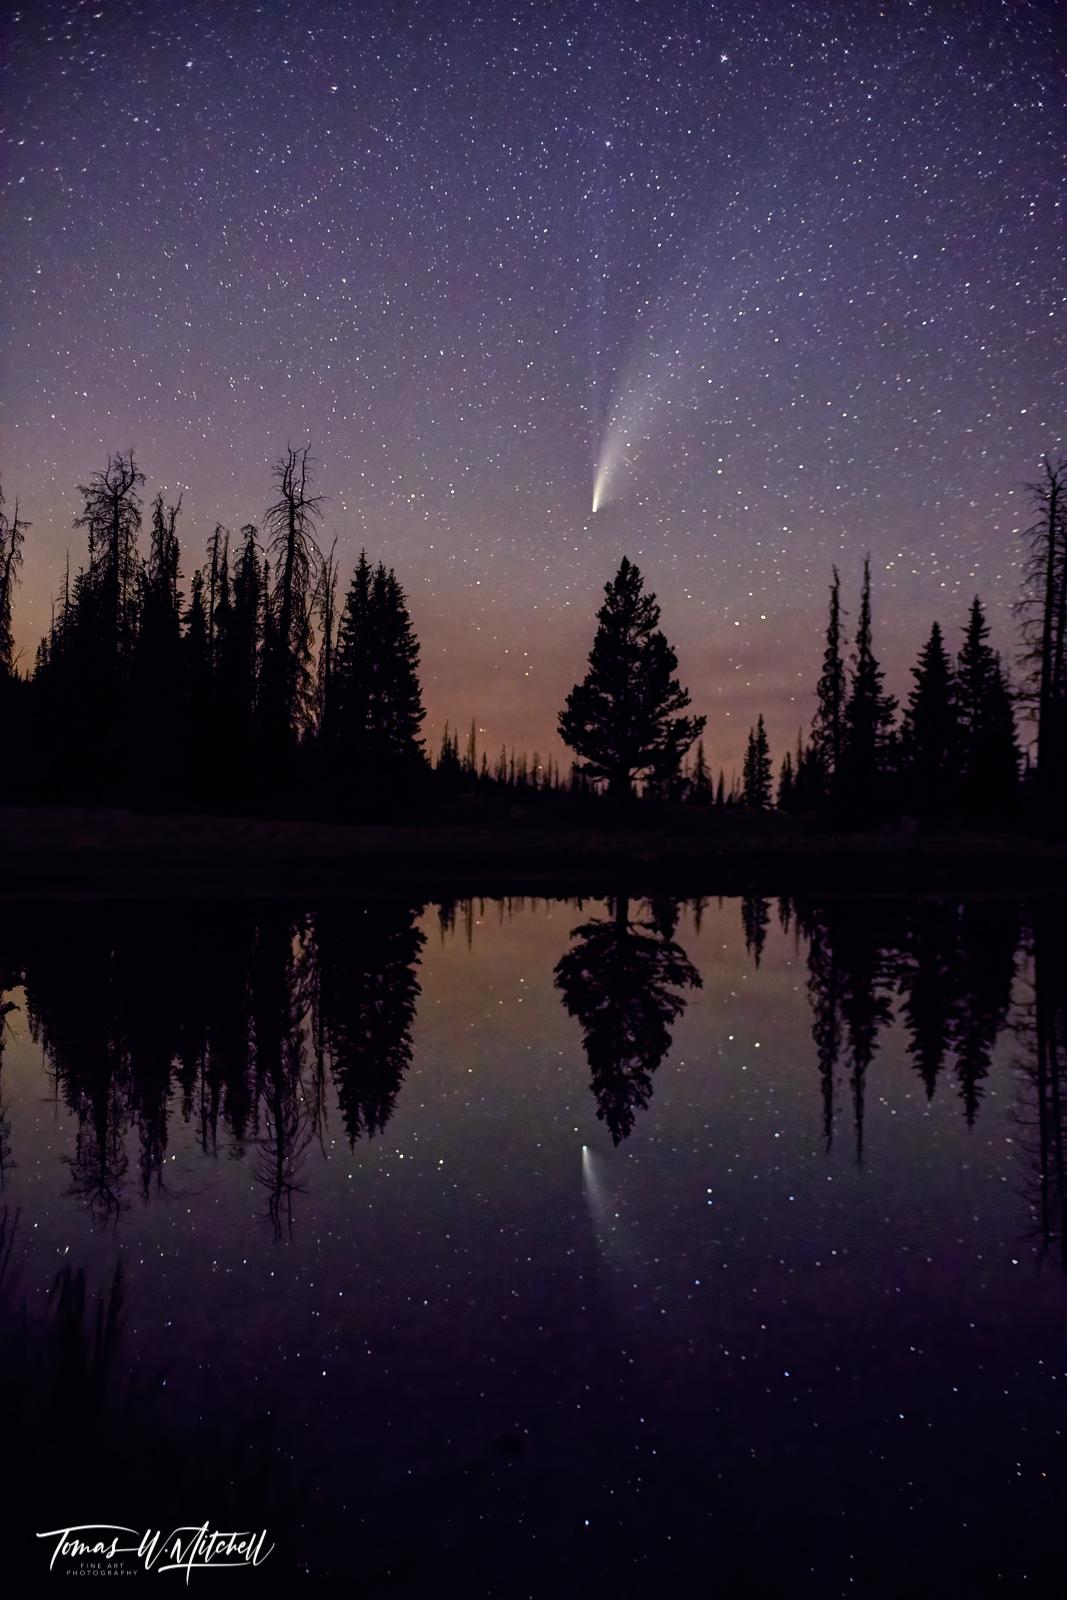 limited edition, fine art, prints, night sky, comet neowise, uinta wasatch cache national forest, psalm 19:1, heavens, god, bible, photograph, reflection, pond, trees, photo